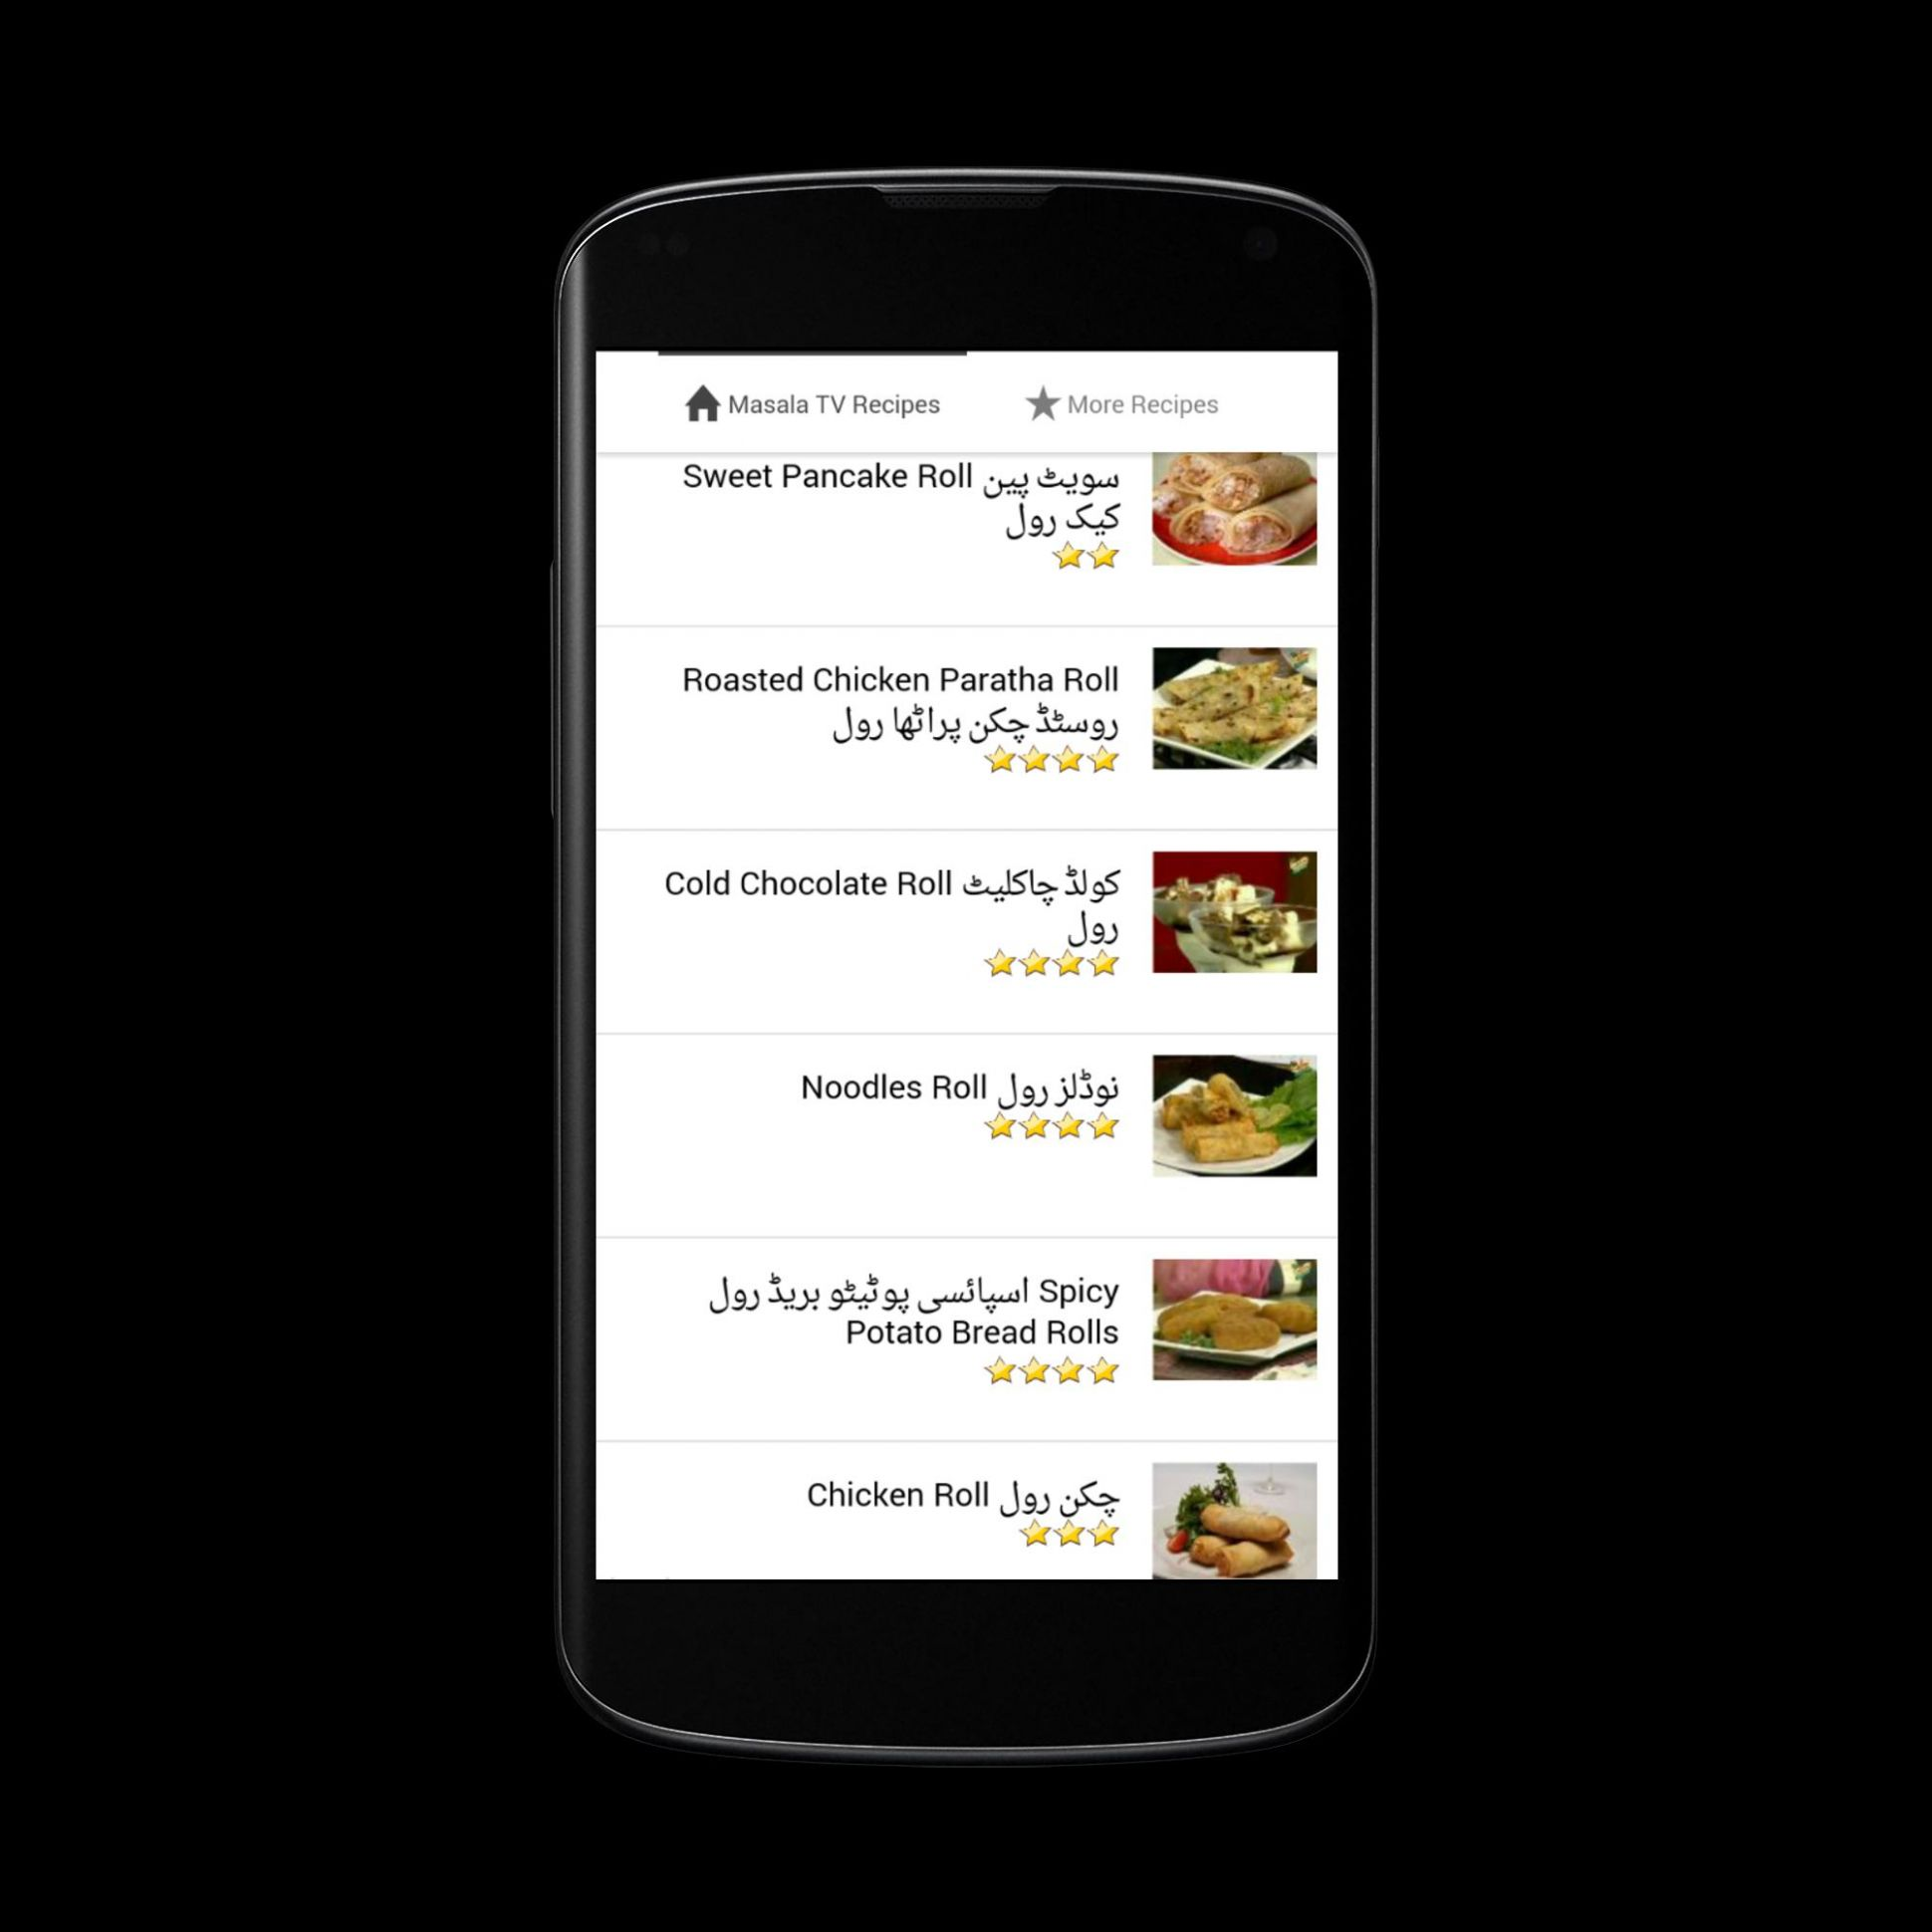 Masala TV Recipes in Urdu for Android - APK Download - Urdu Recipes Masala Tv